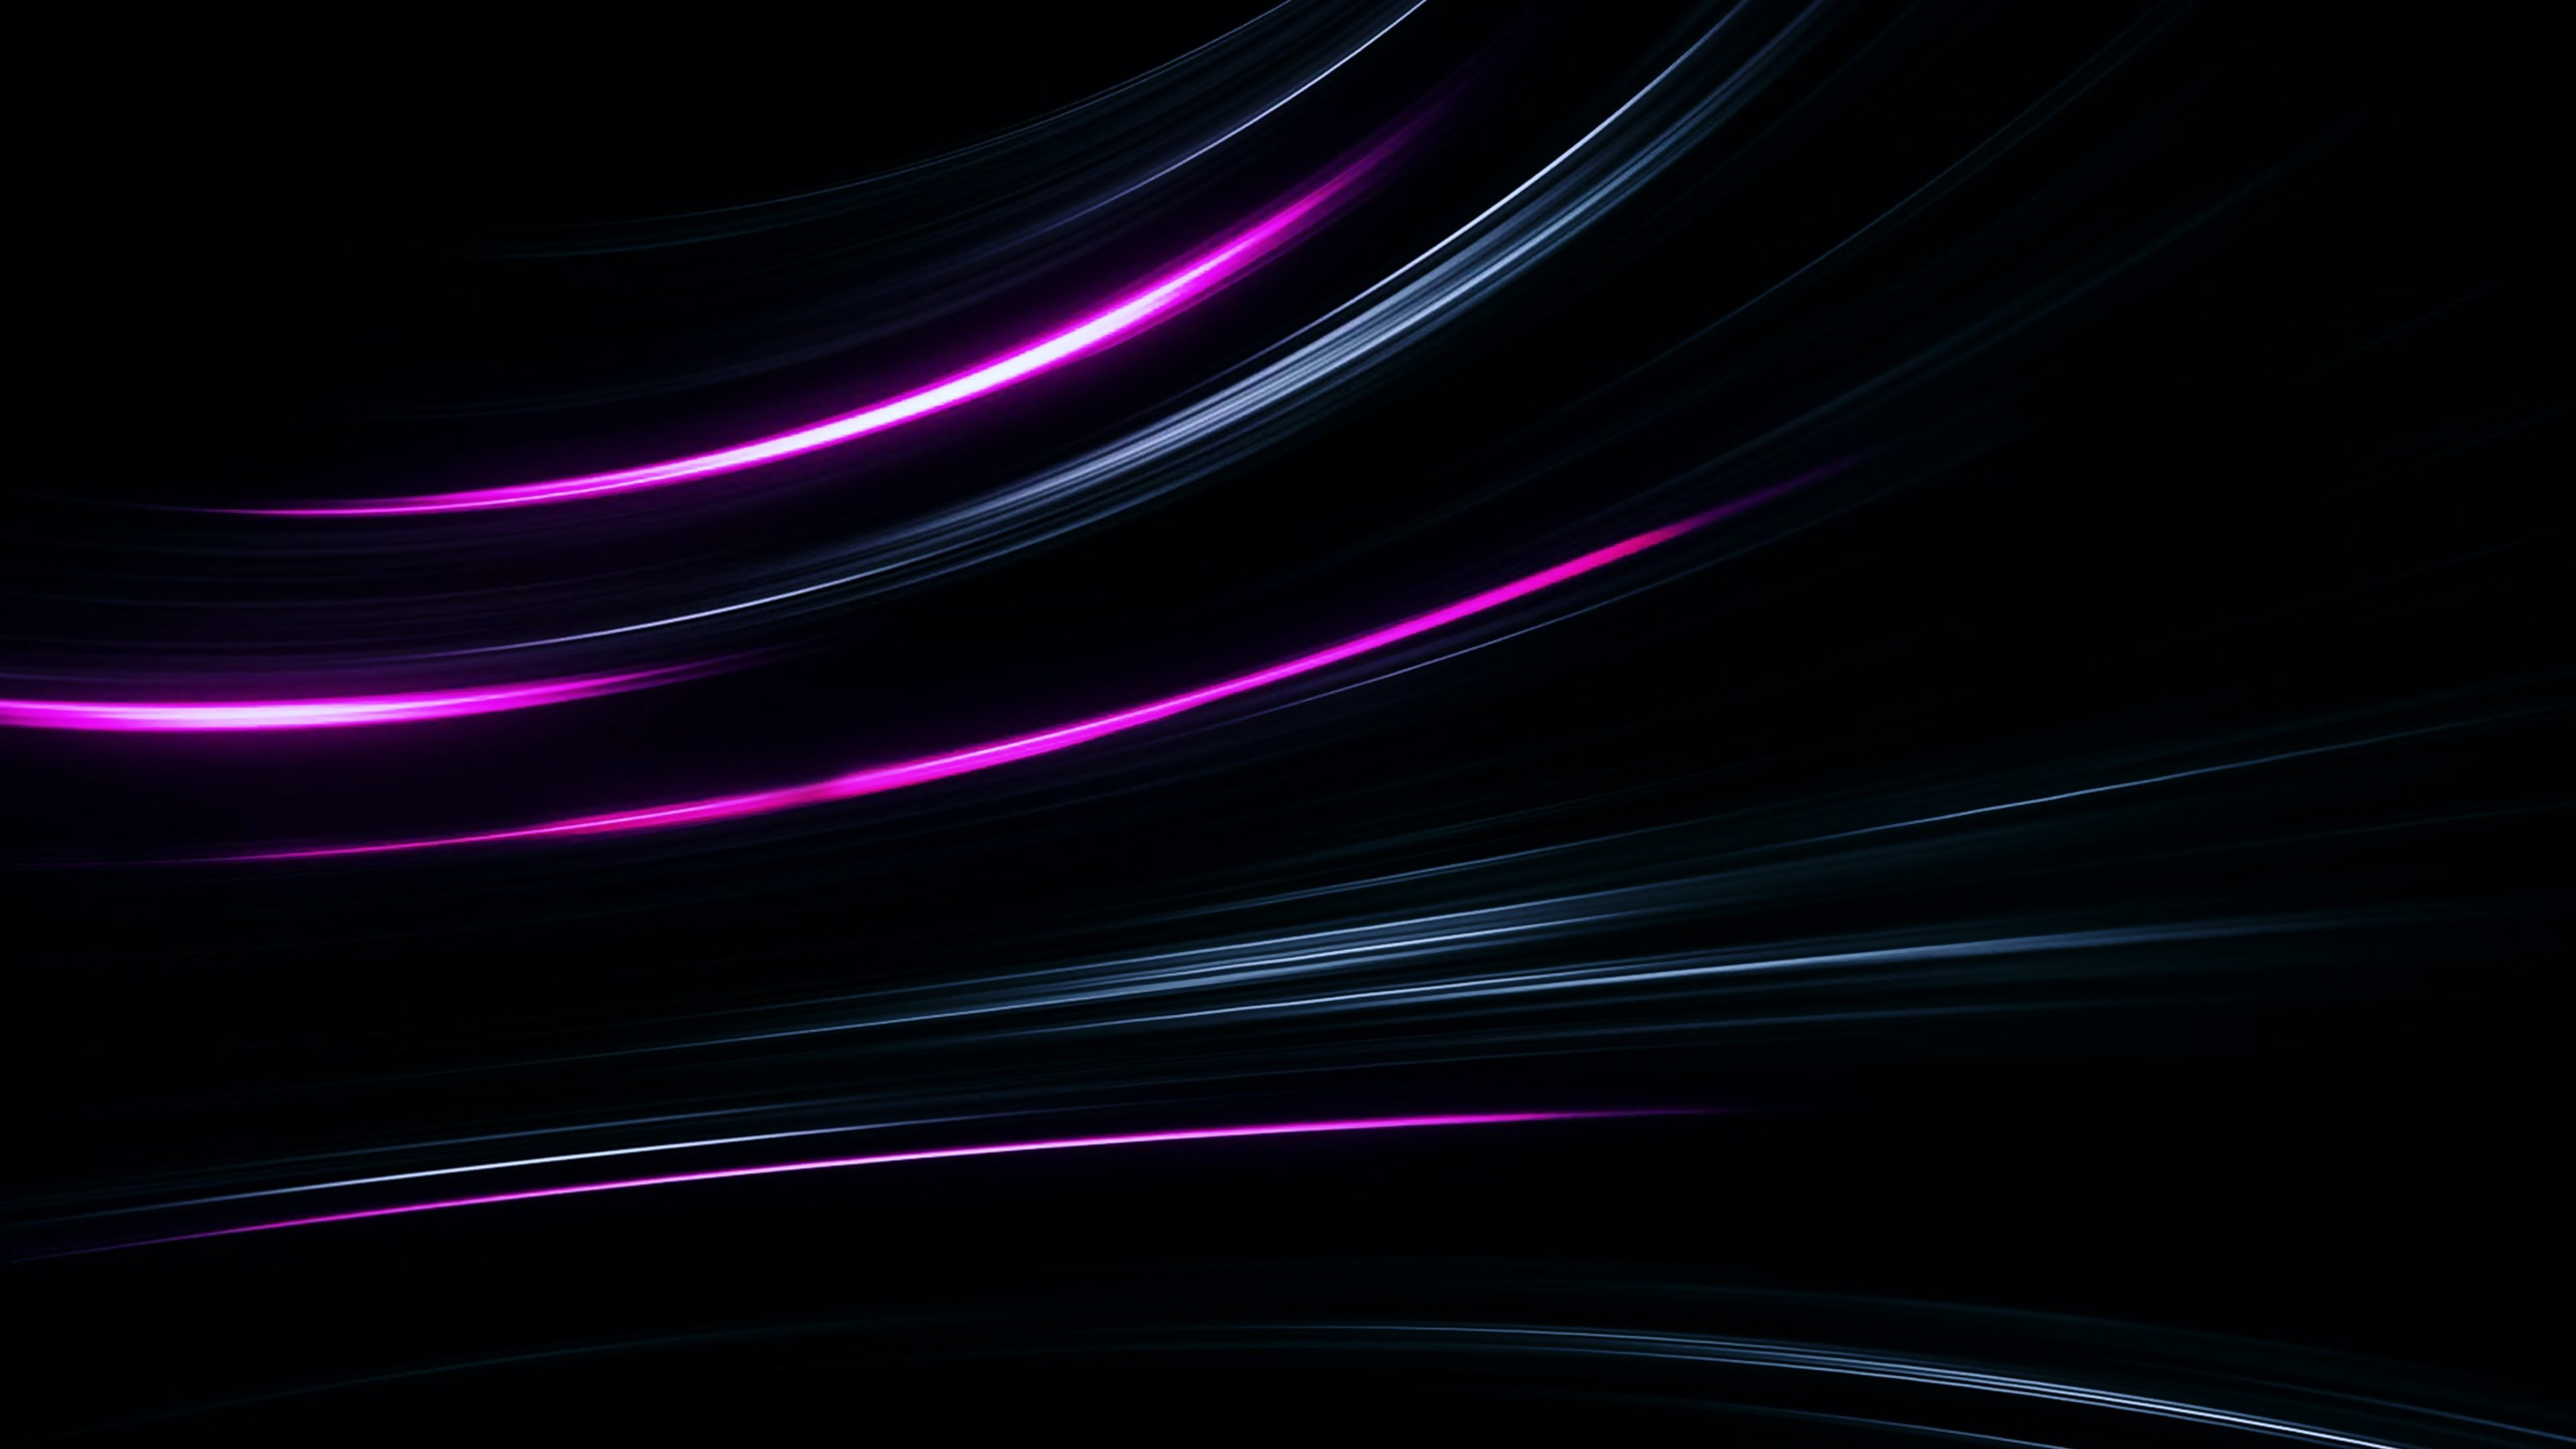 neon lines abstract glowing lines 1539370983 - Neon Lines Abstract Glowing Lines - neon wallpapers, lines wallpapers, hd-wallpapers, abstract wallpapers, 4k-wallpapers